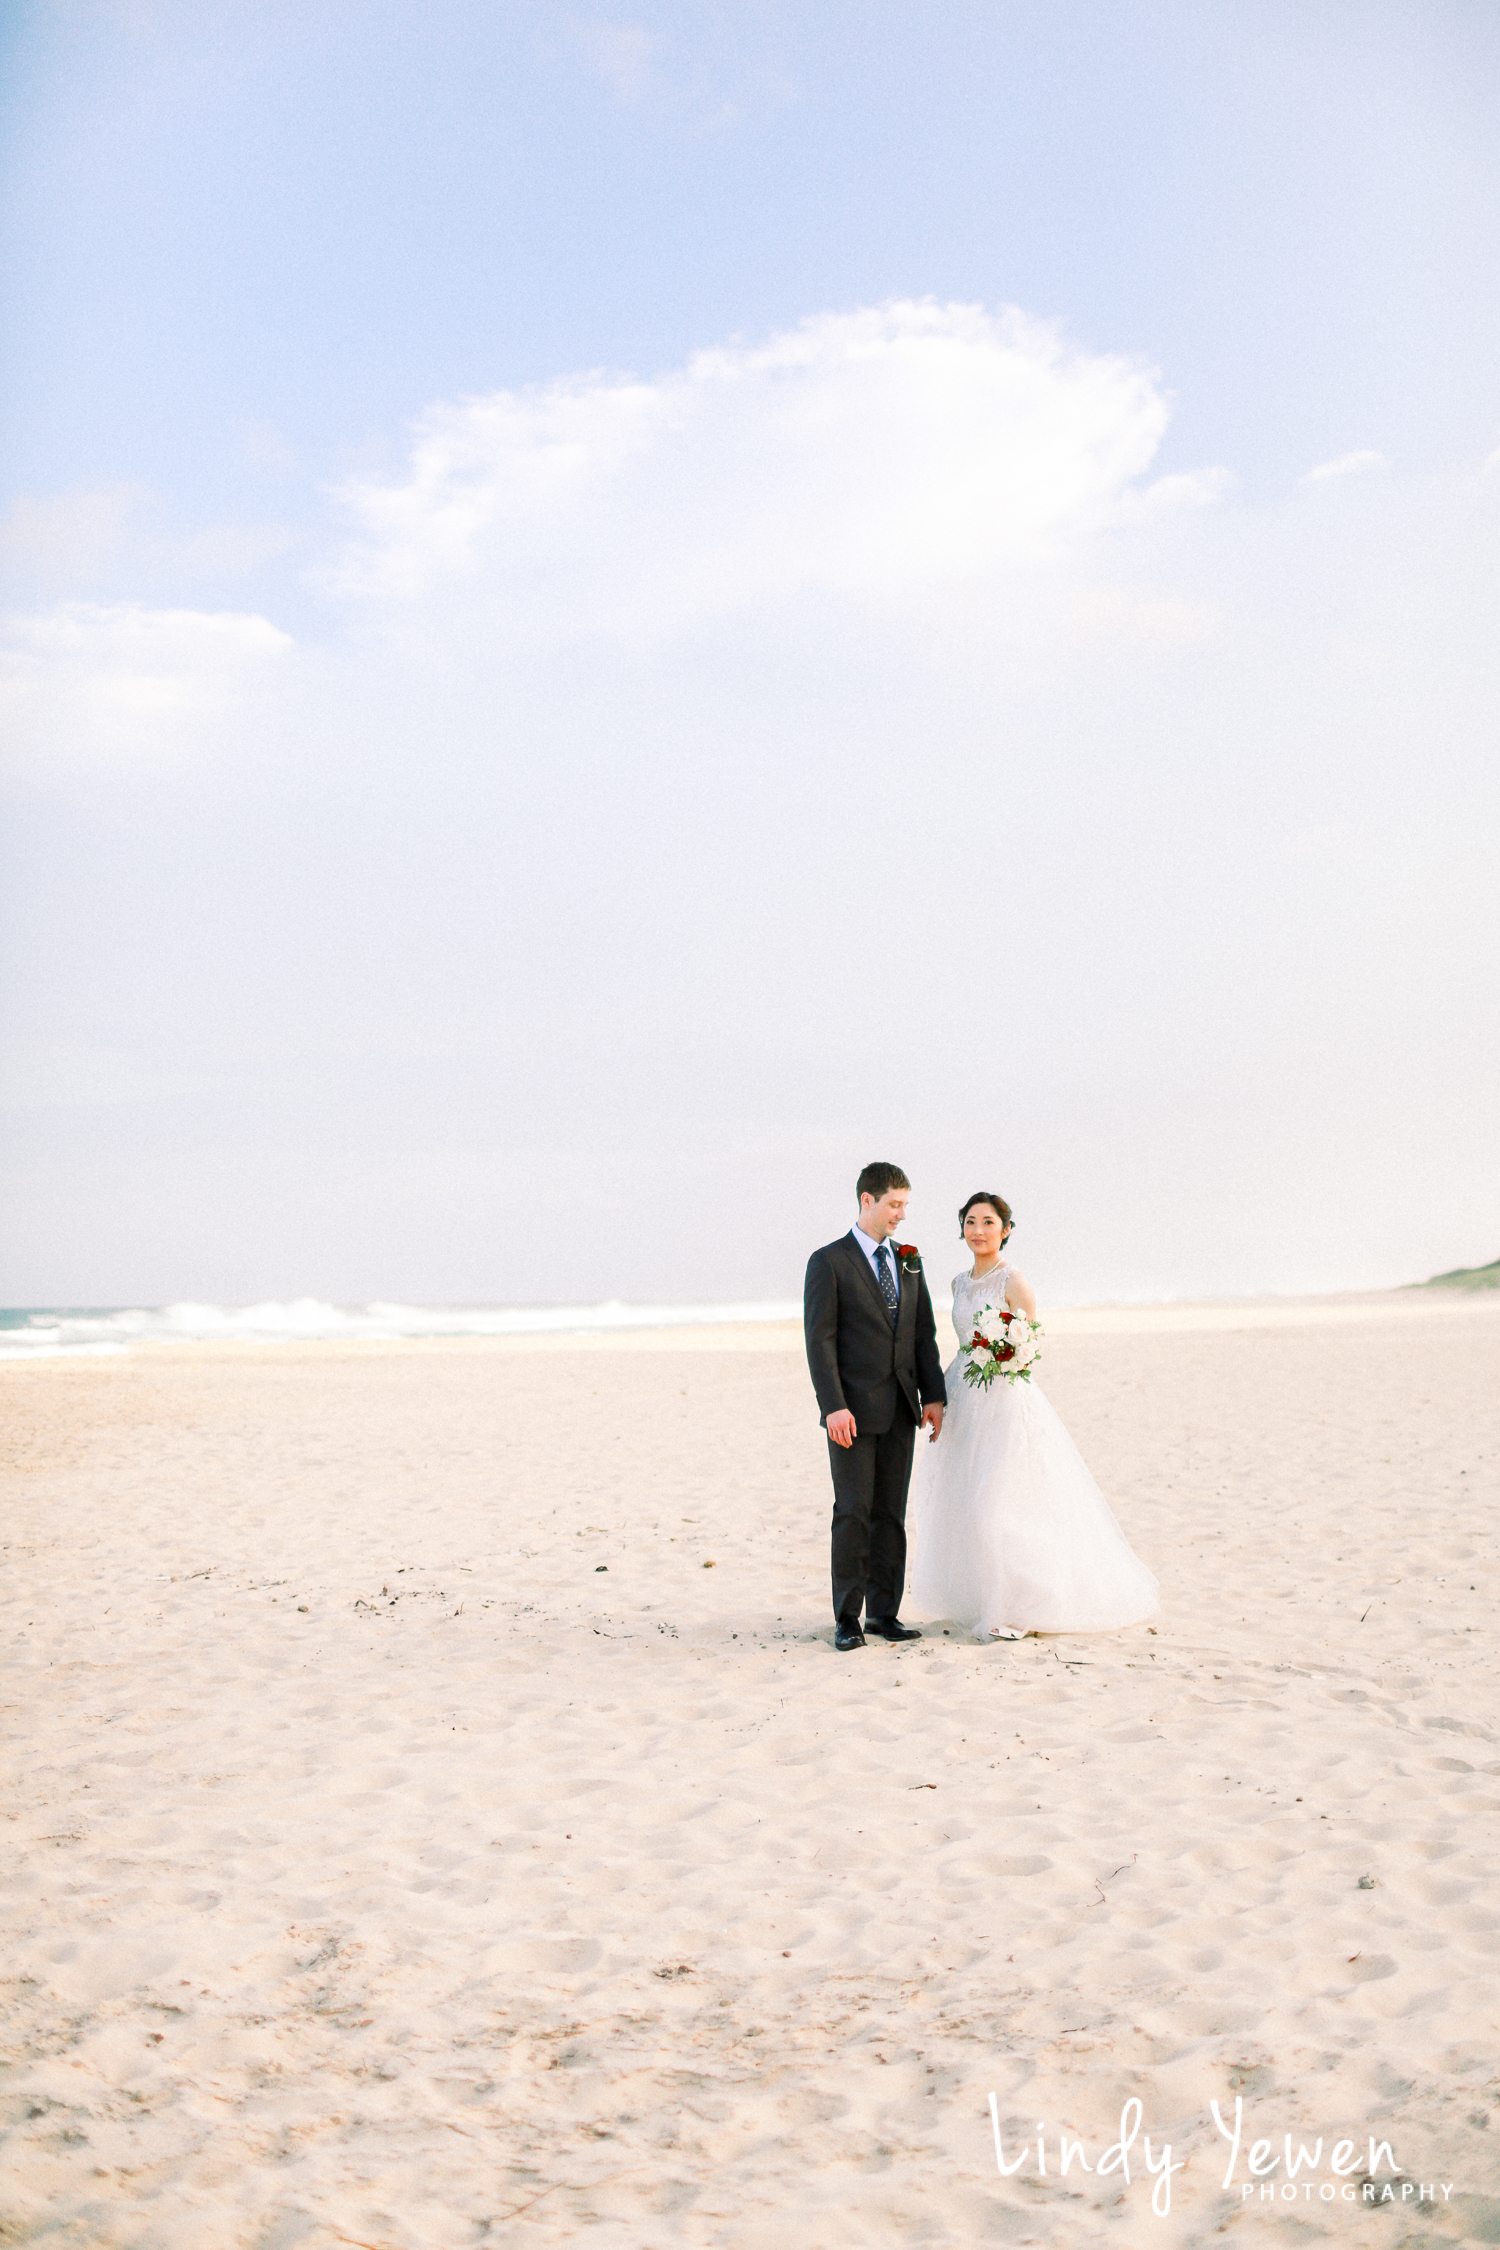 Sunshine-Beach-Weddings-Dimitrije-Maria 99.jpg